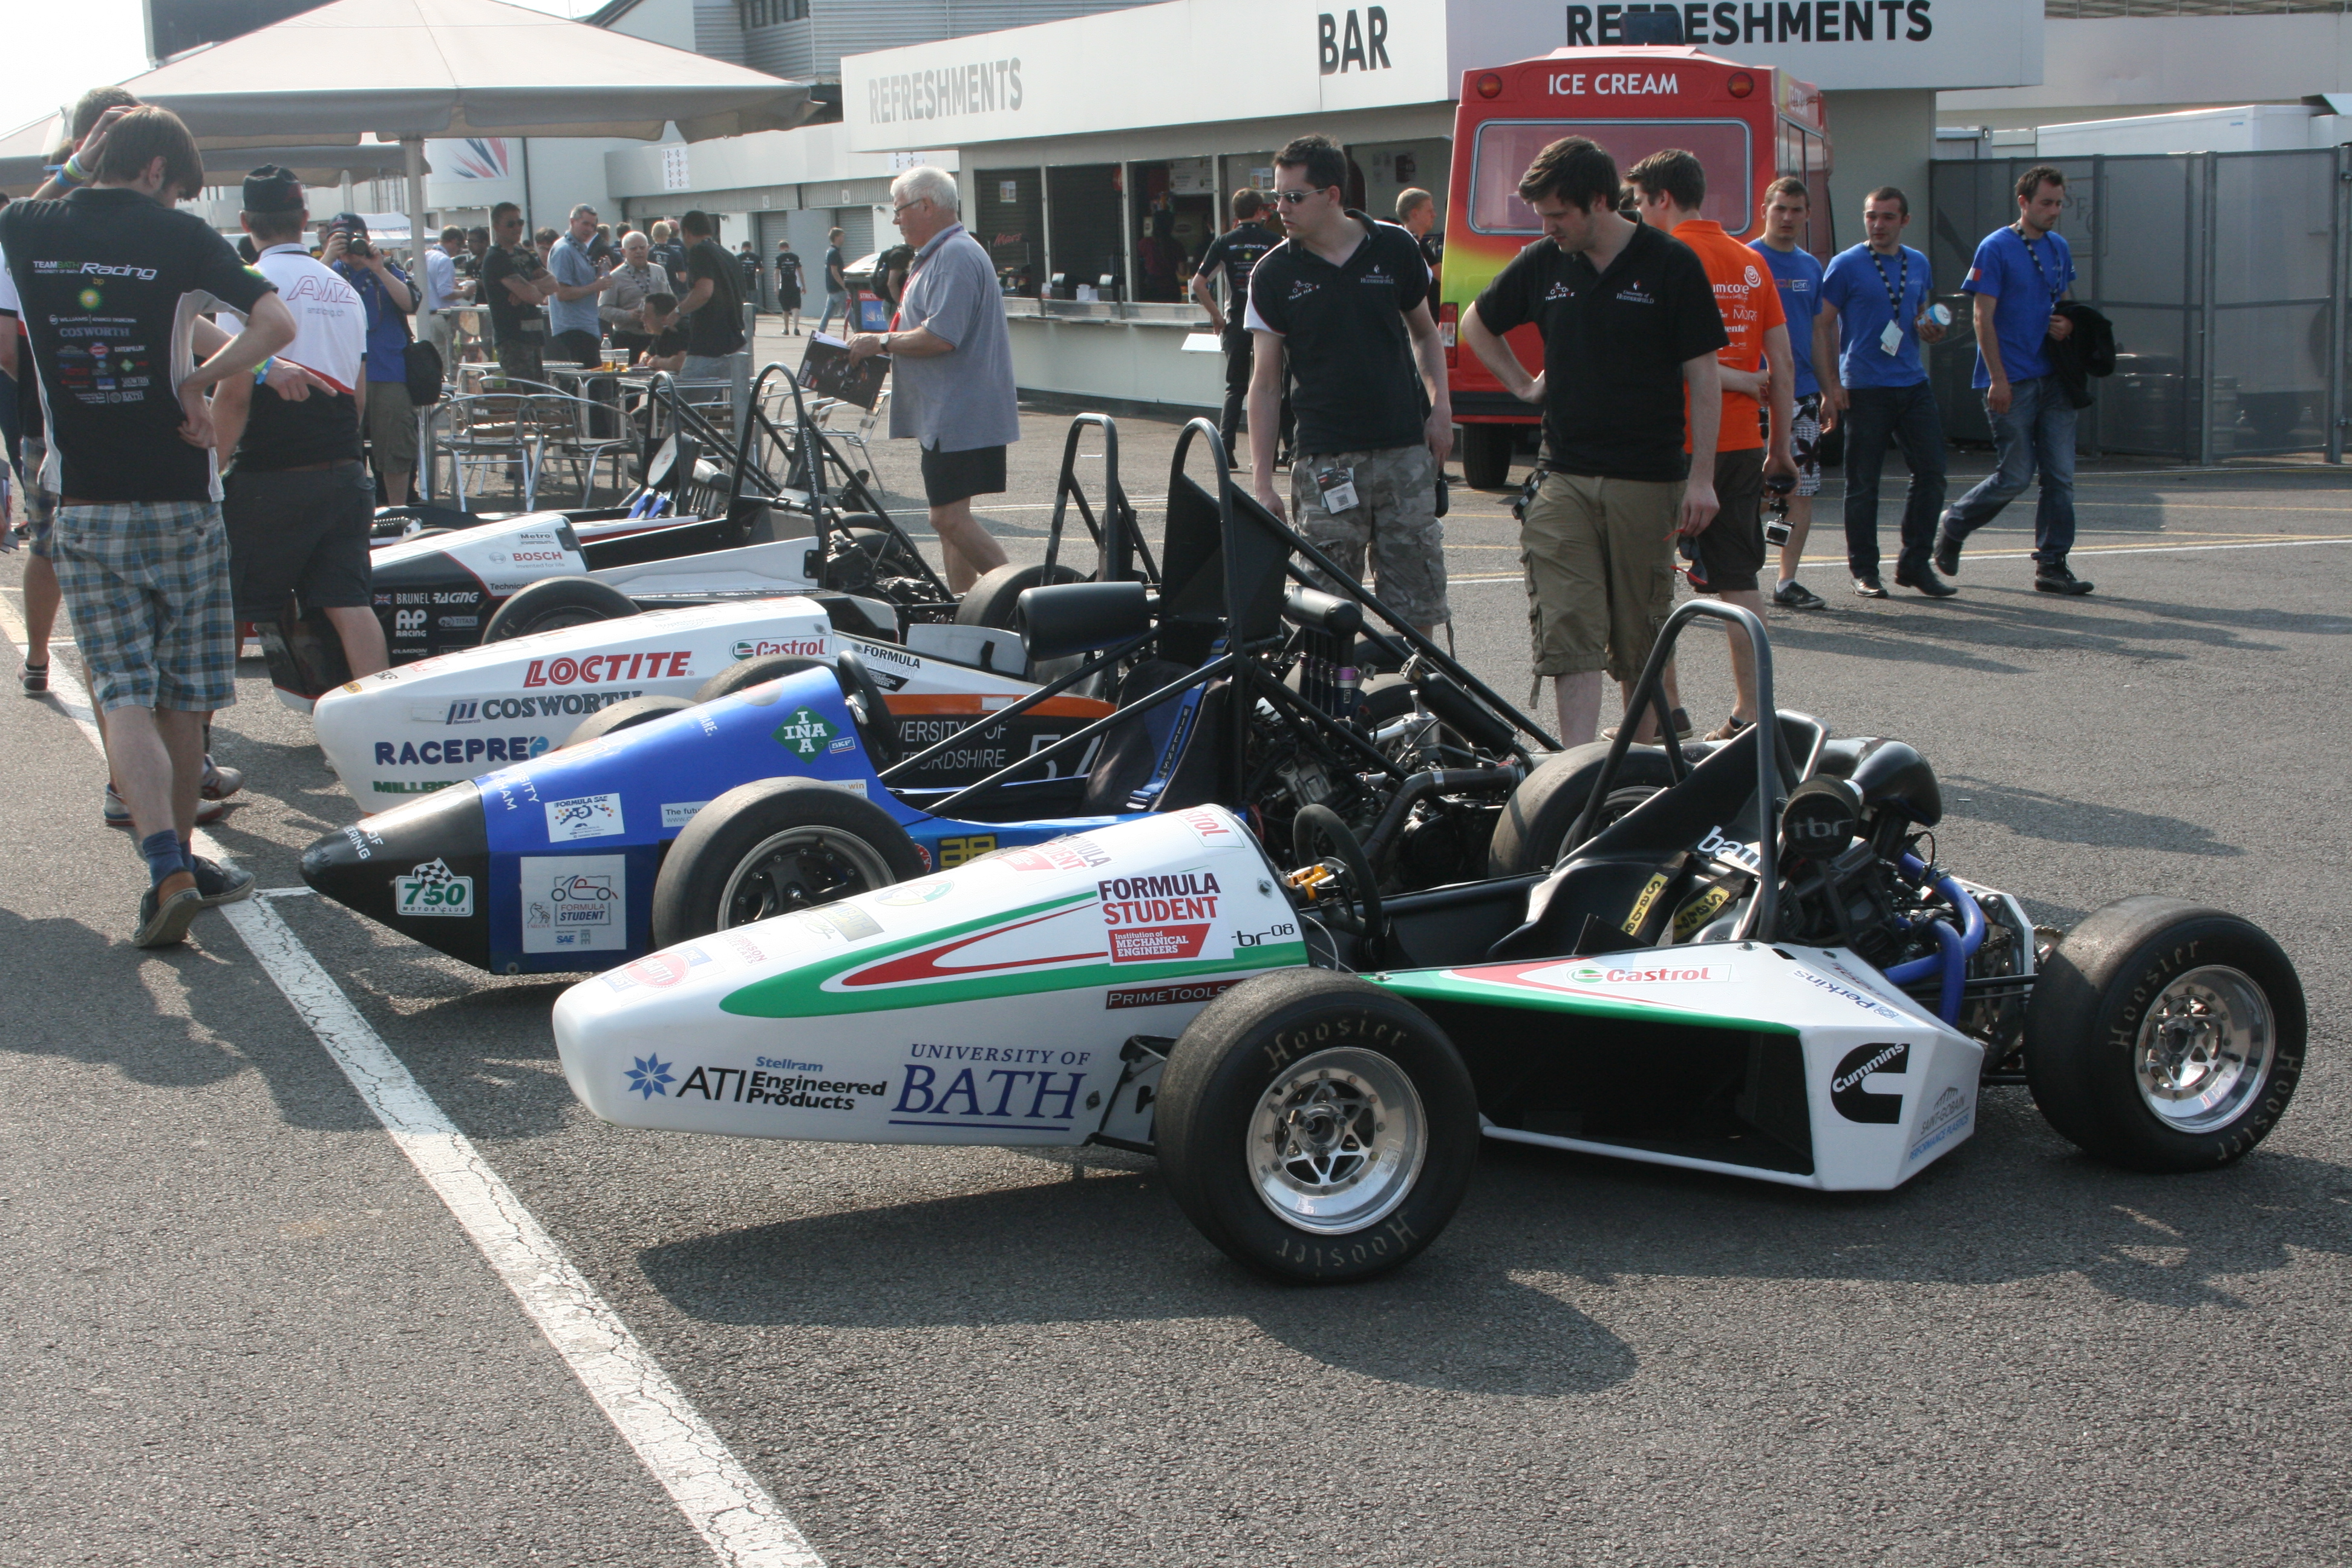 teams at the formula student event